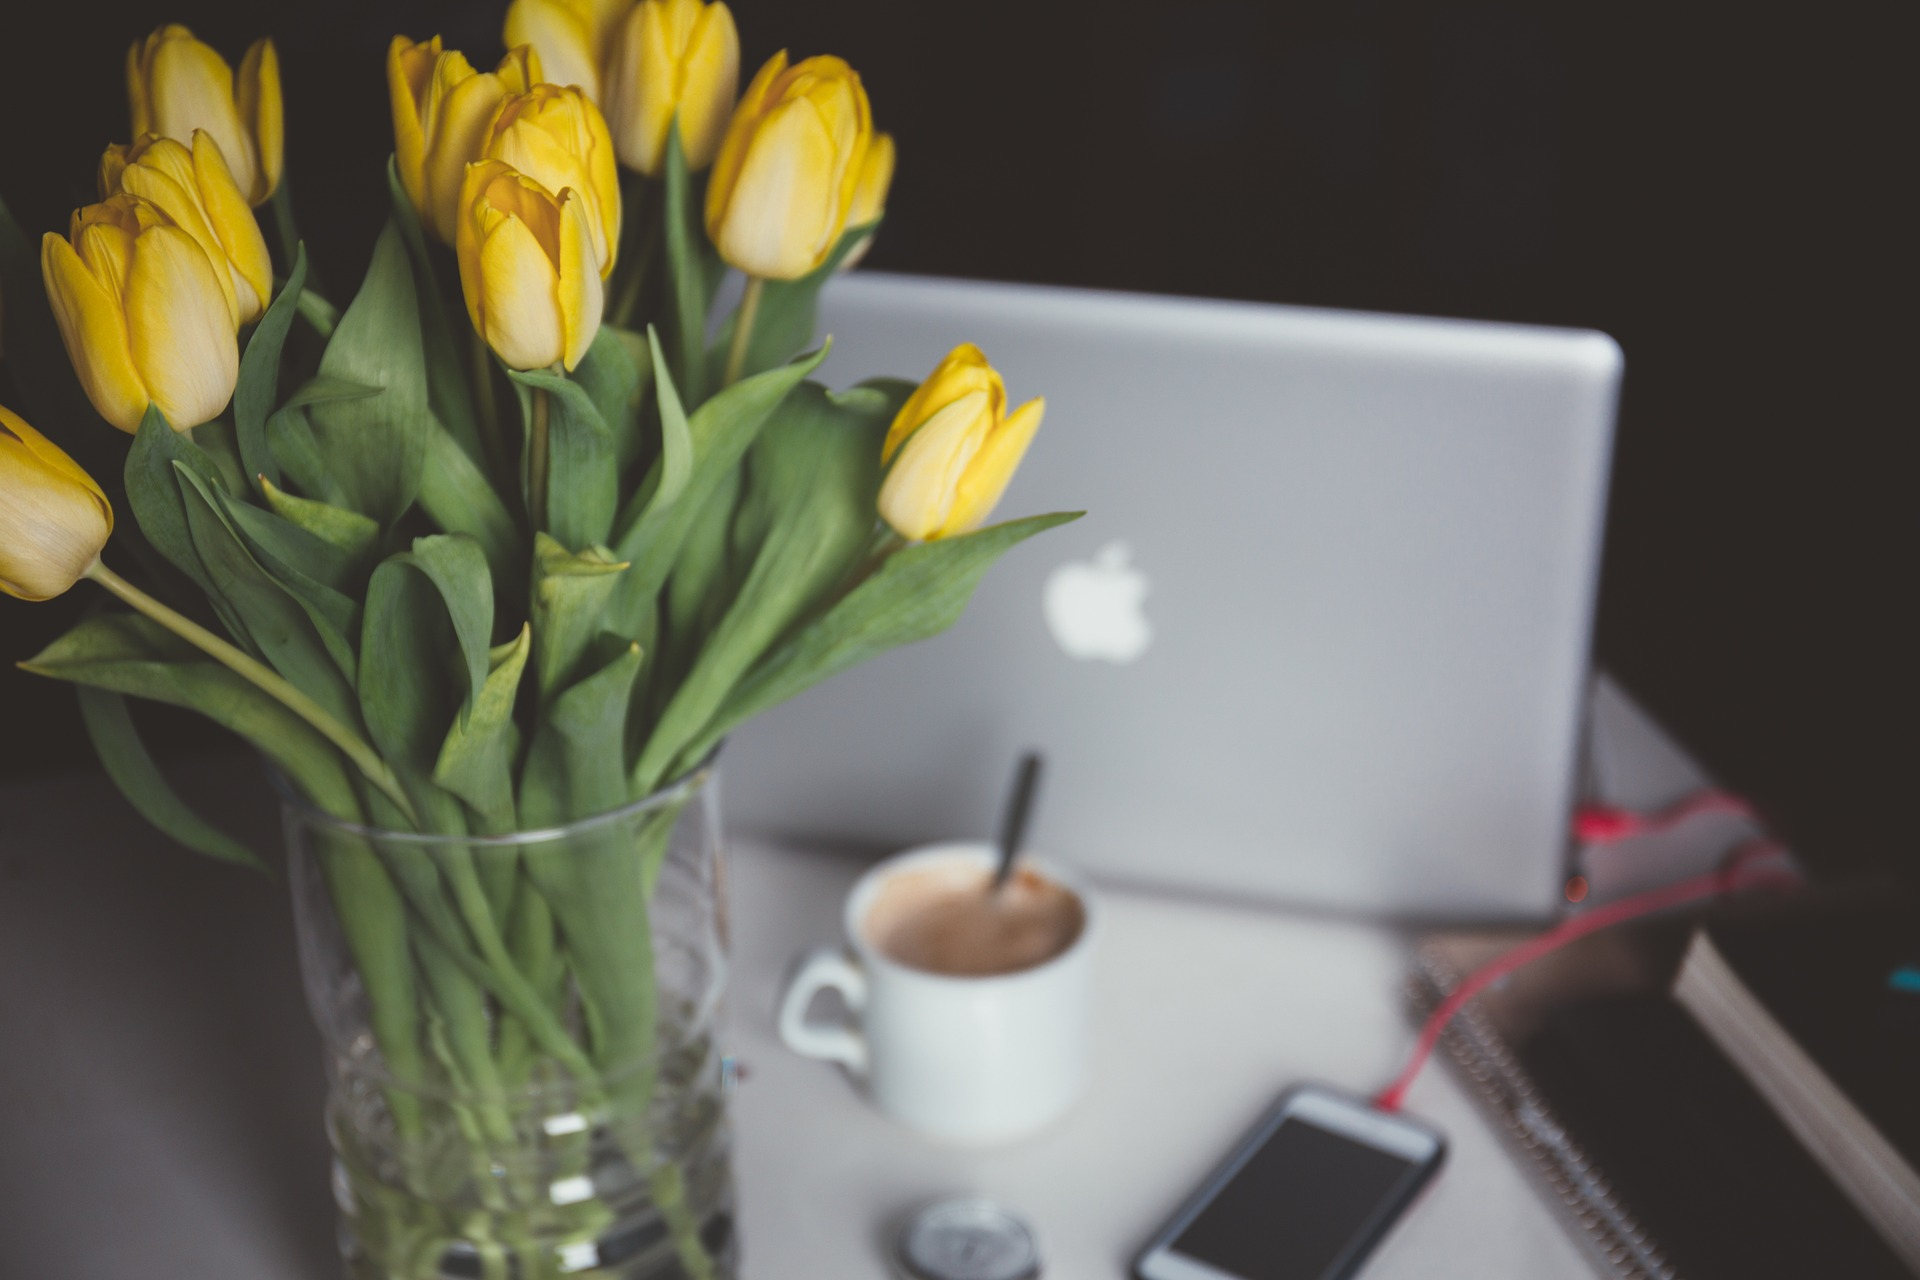 yellow-tulips-on-desk-with-coffee-laptop-and-smartphone